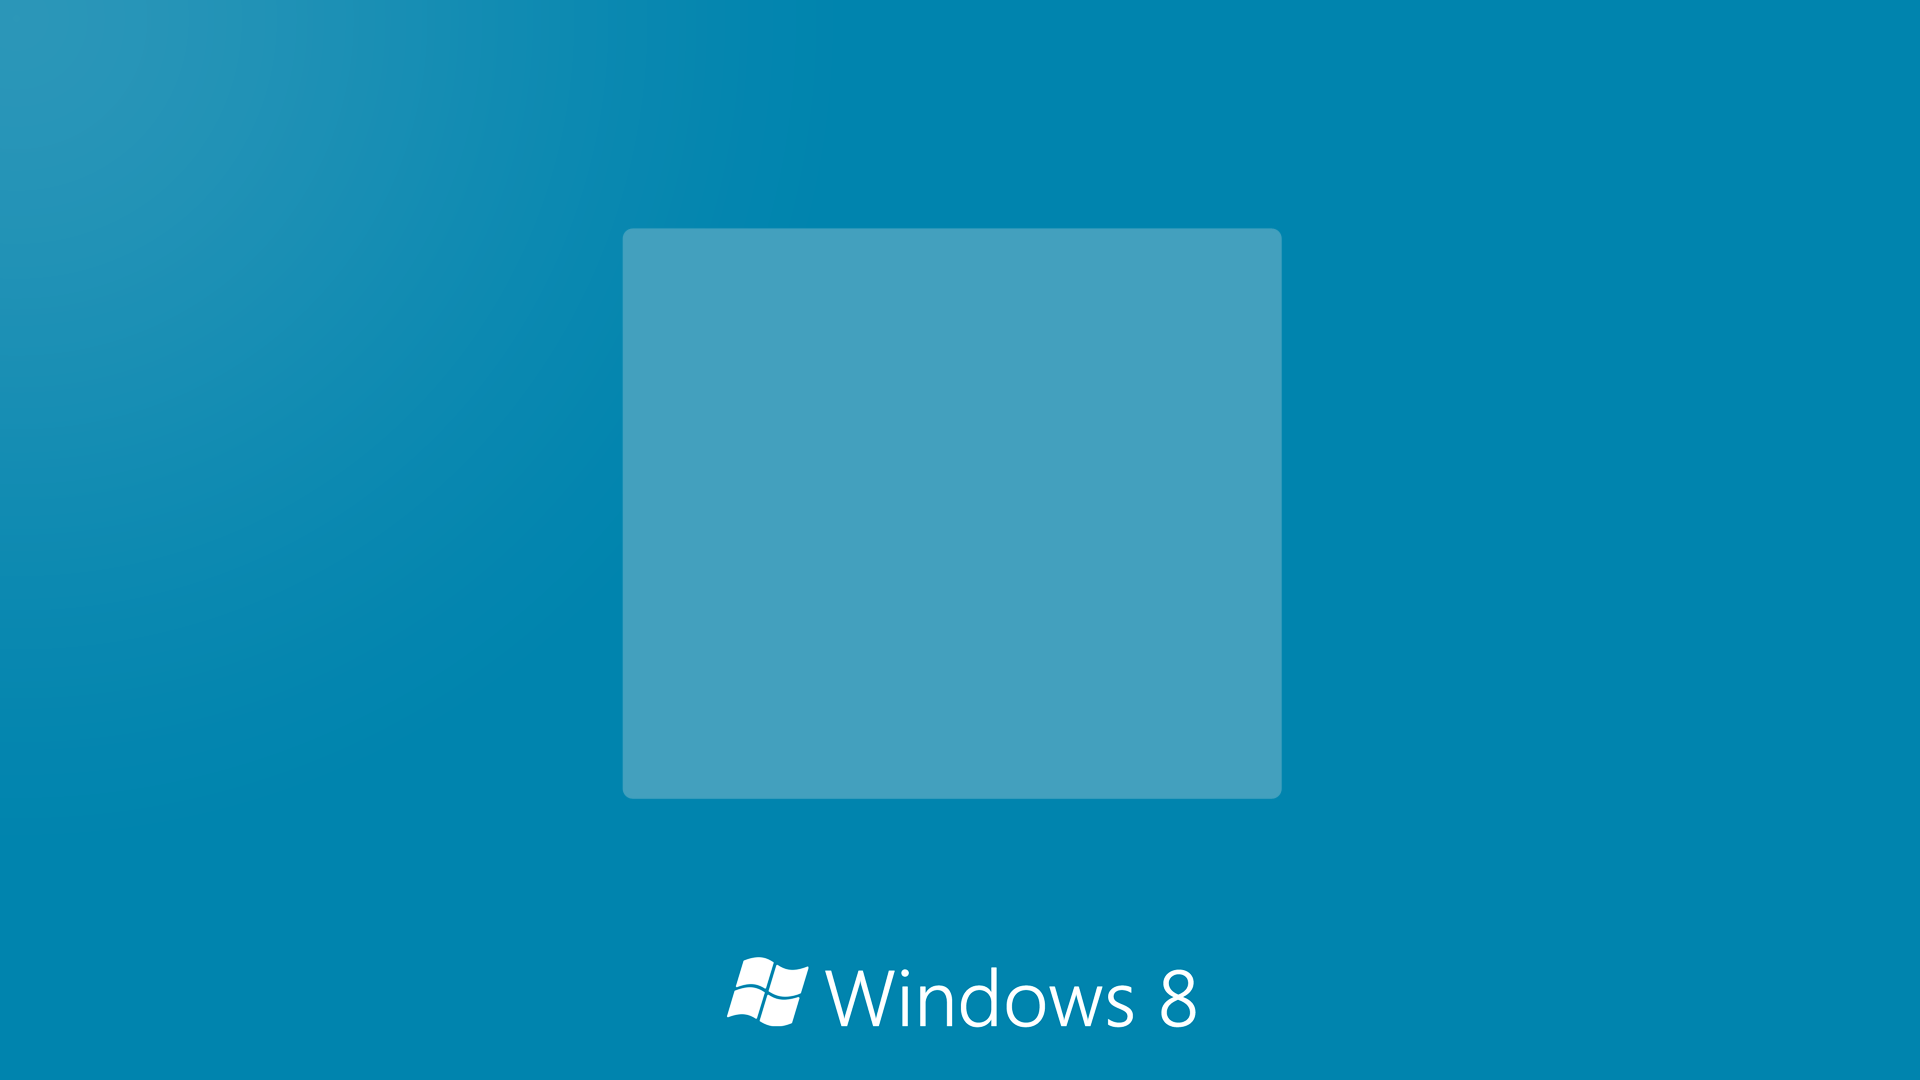 Microsoft Windows 8 Wallpaper 14